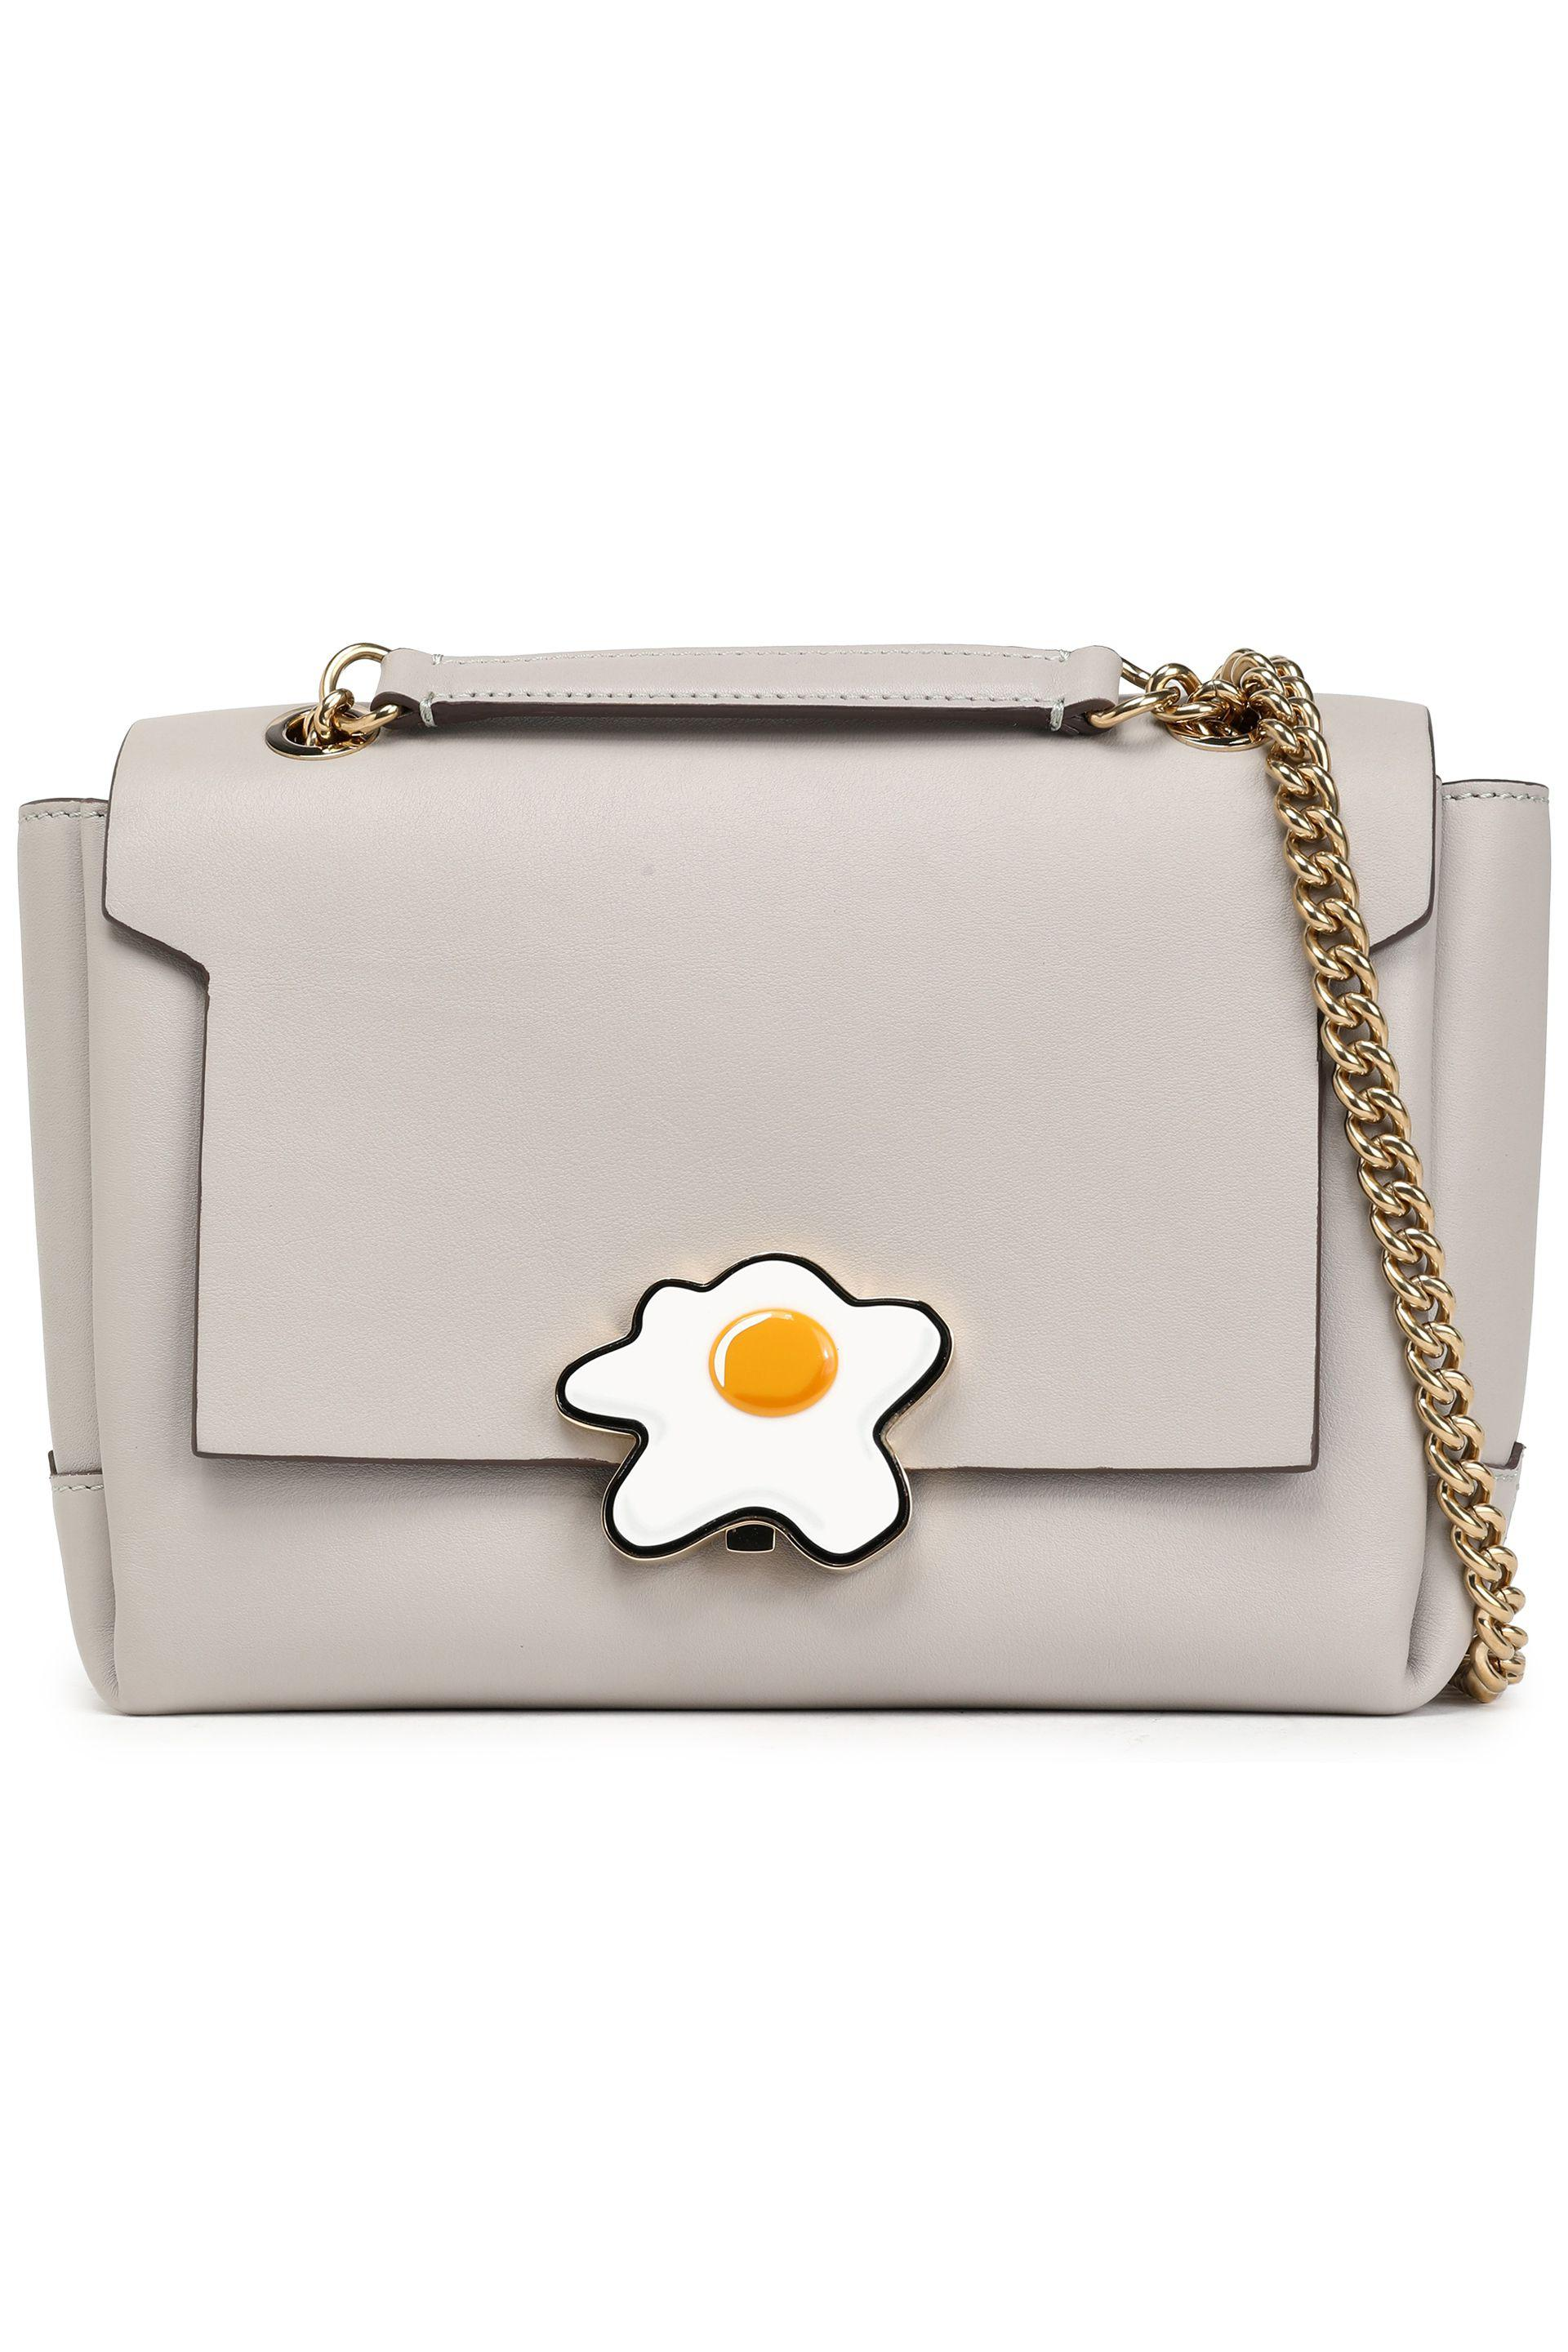 638a2093e8c1 Lyst - Anya Hindmarch Bathurst Embellished Leather Shoulder Bag